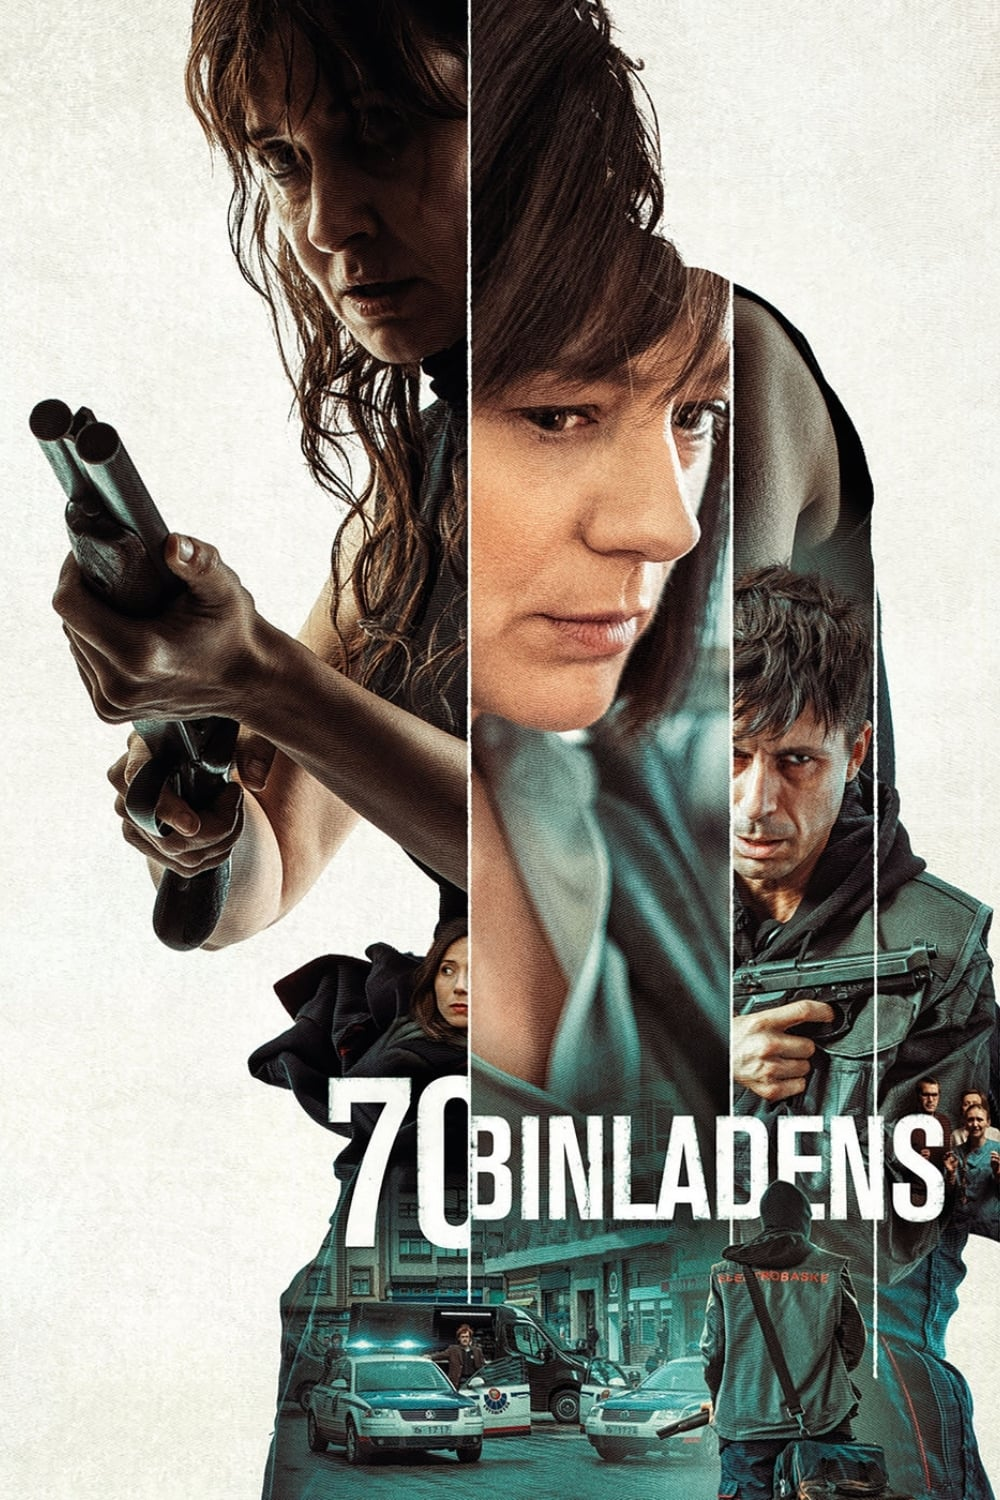 70 Binladens streaming sur zone telechargement